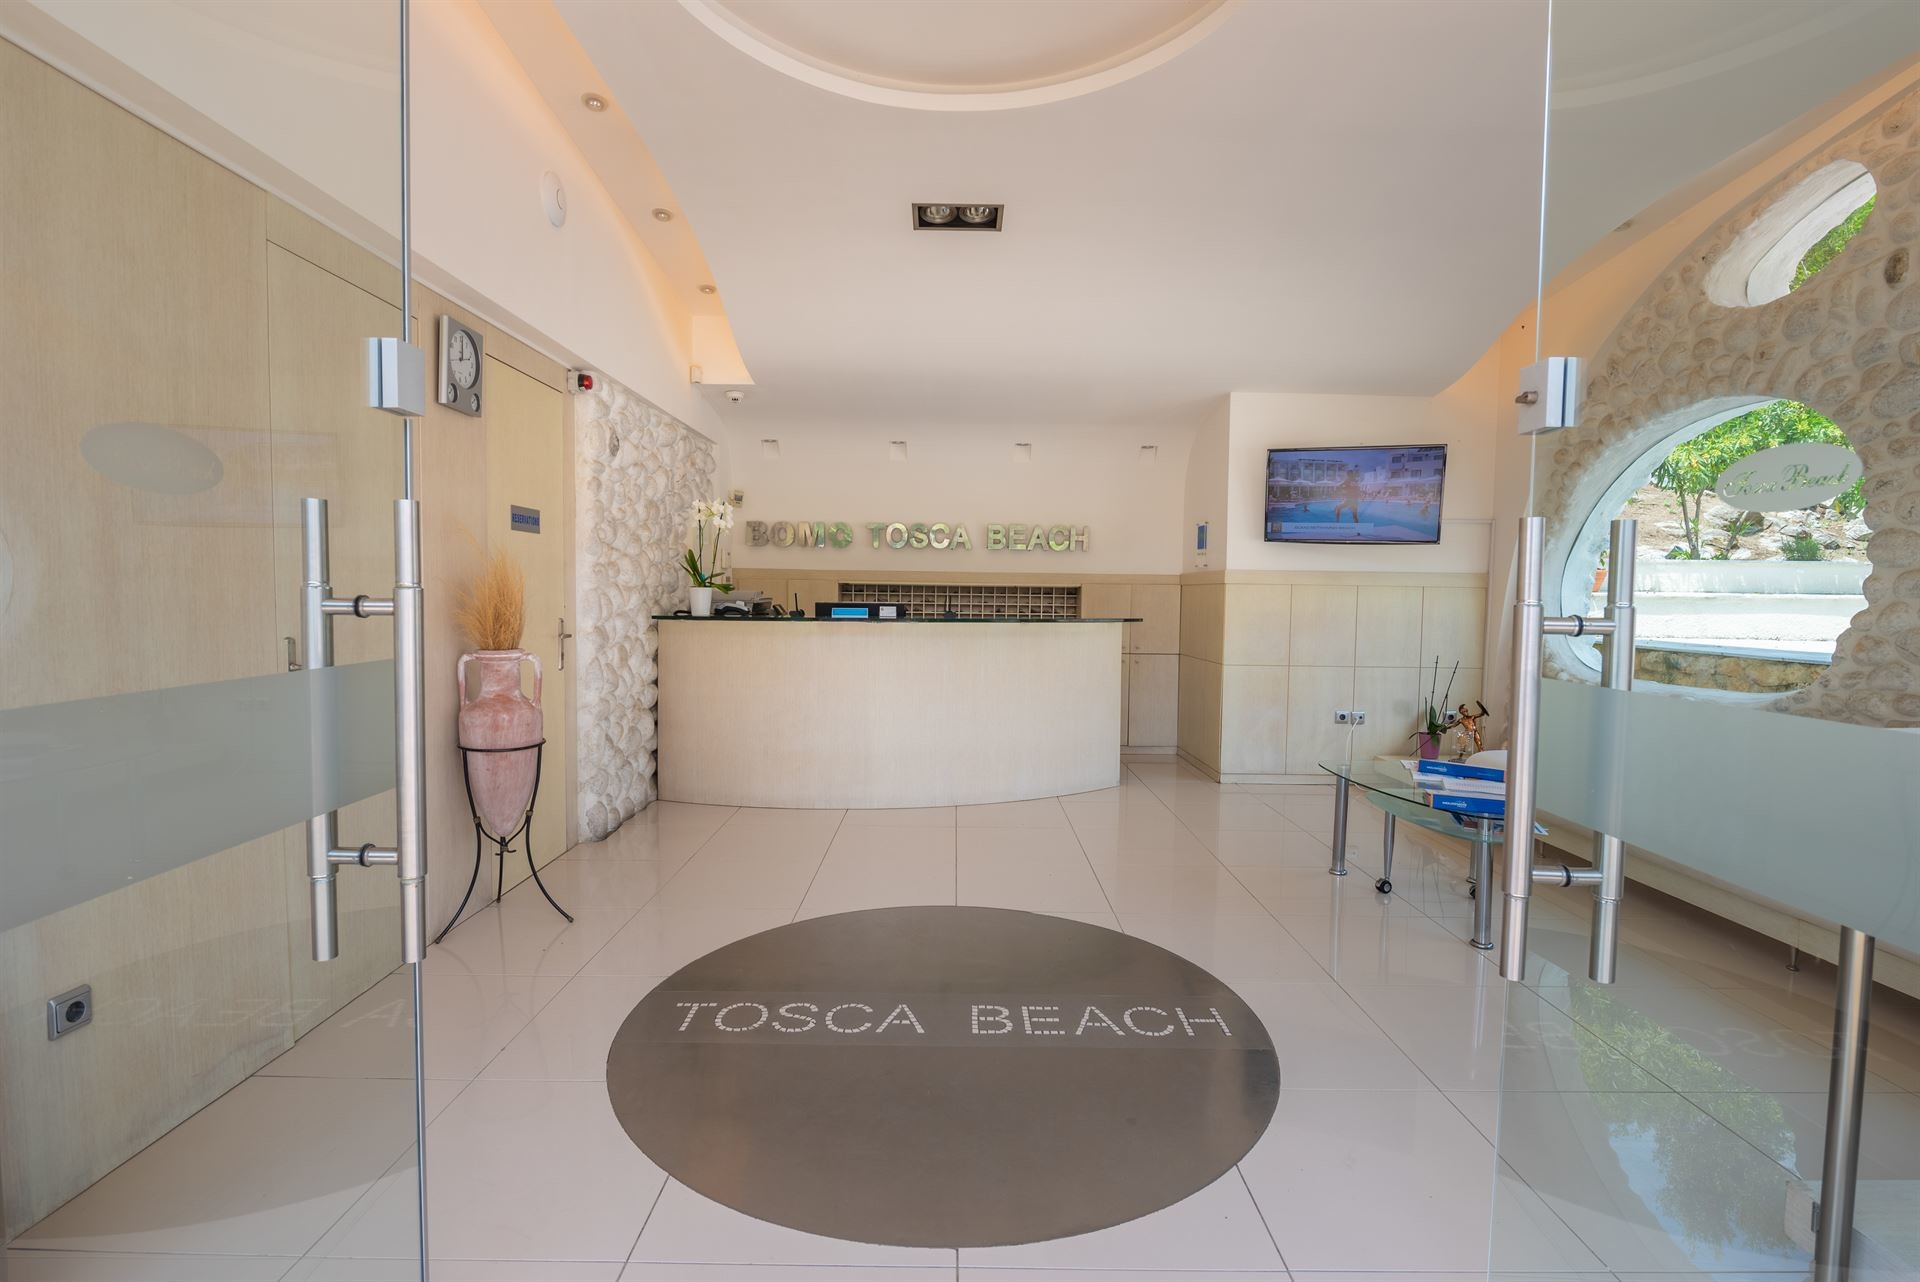 Tosca Beach Bungalows 4* рецепция